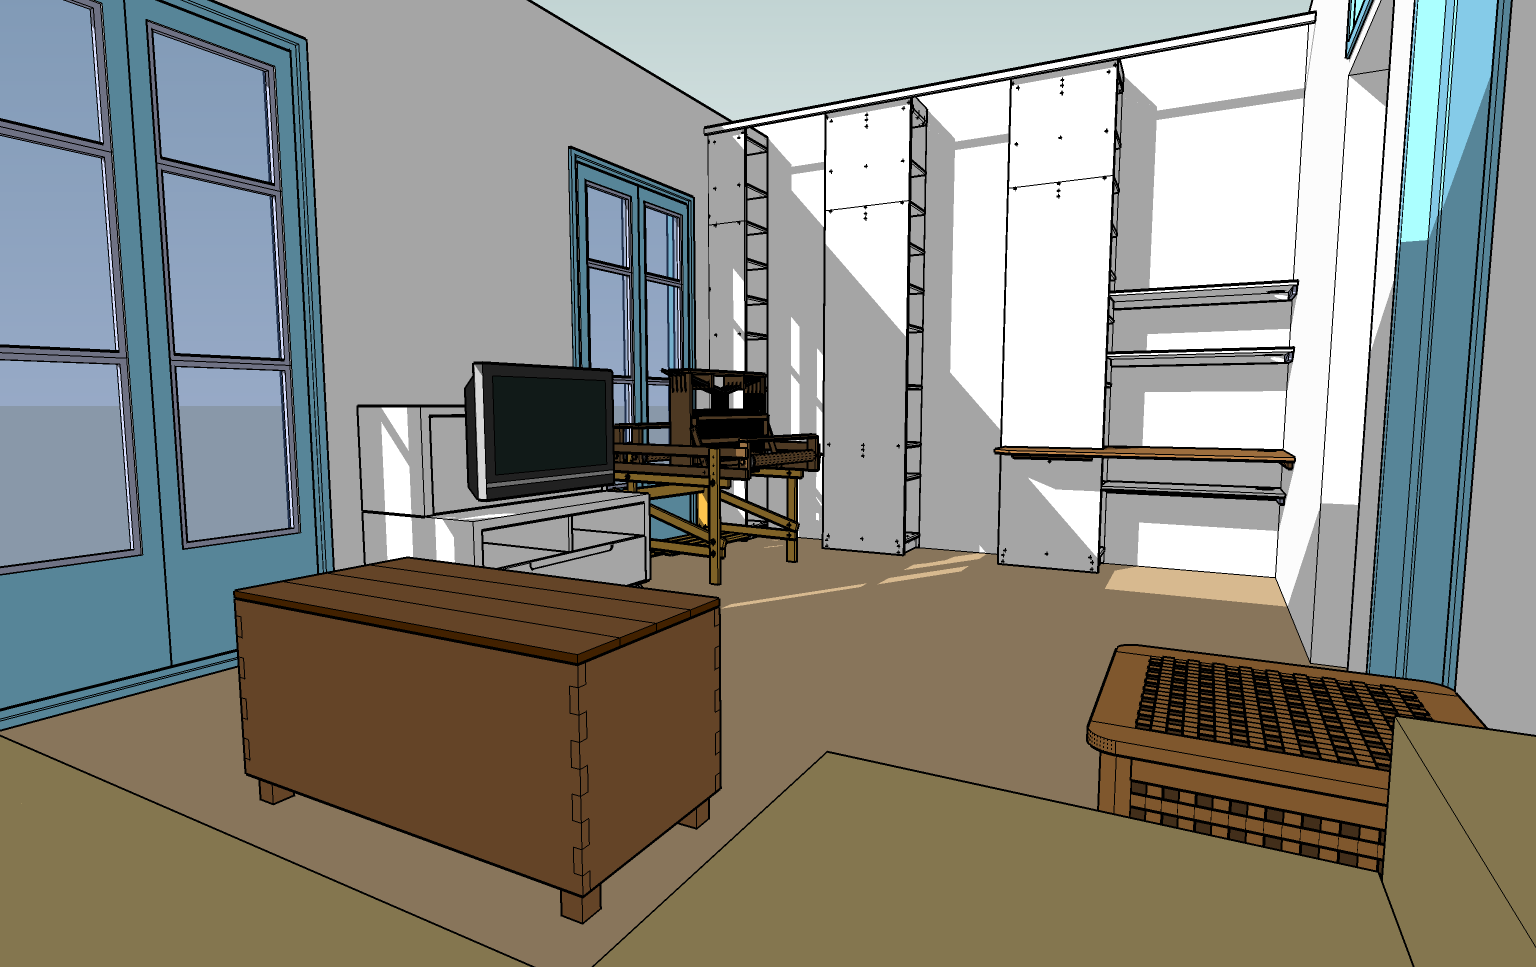 Using google sketchup to test room layouts catmacey 39 s stuff for Room design builder